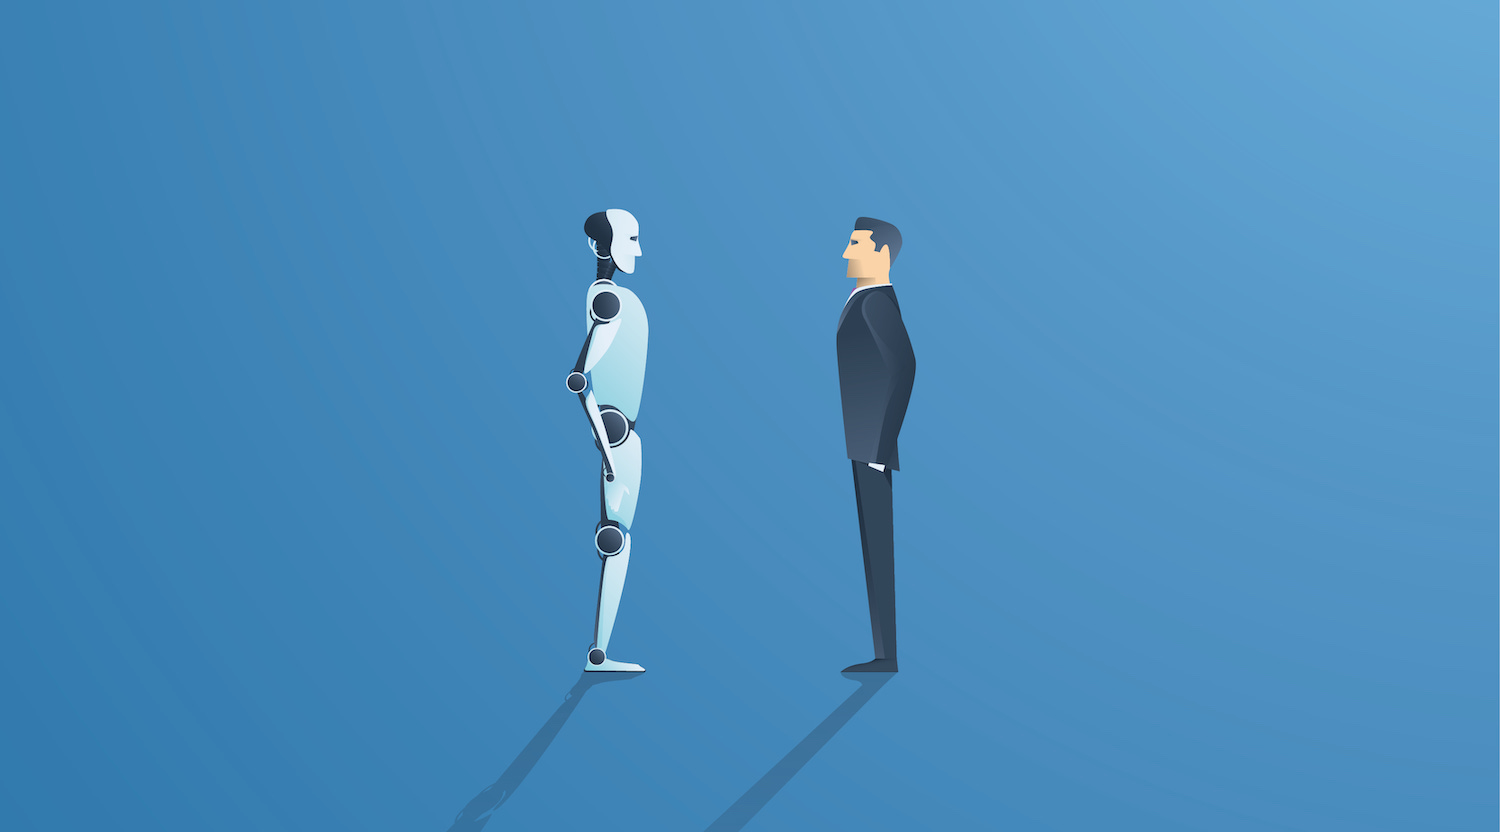 Robo-Advisors vs Human Advisors: Who's Better at What?